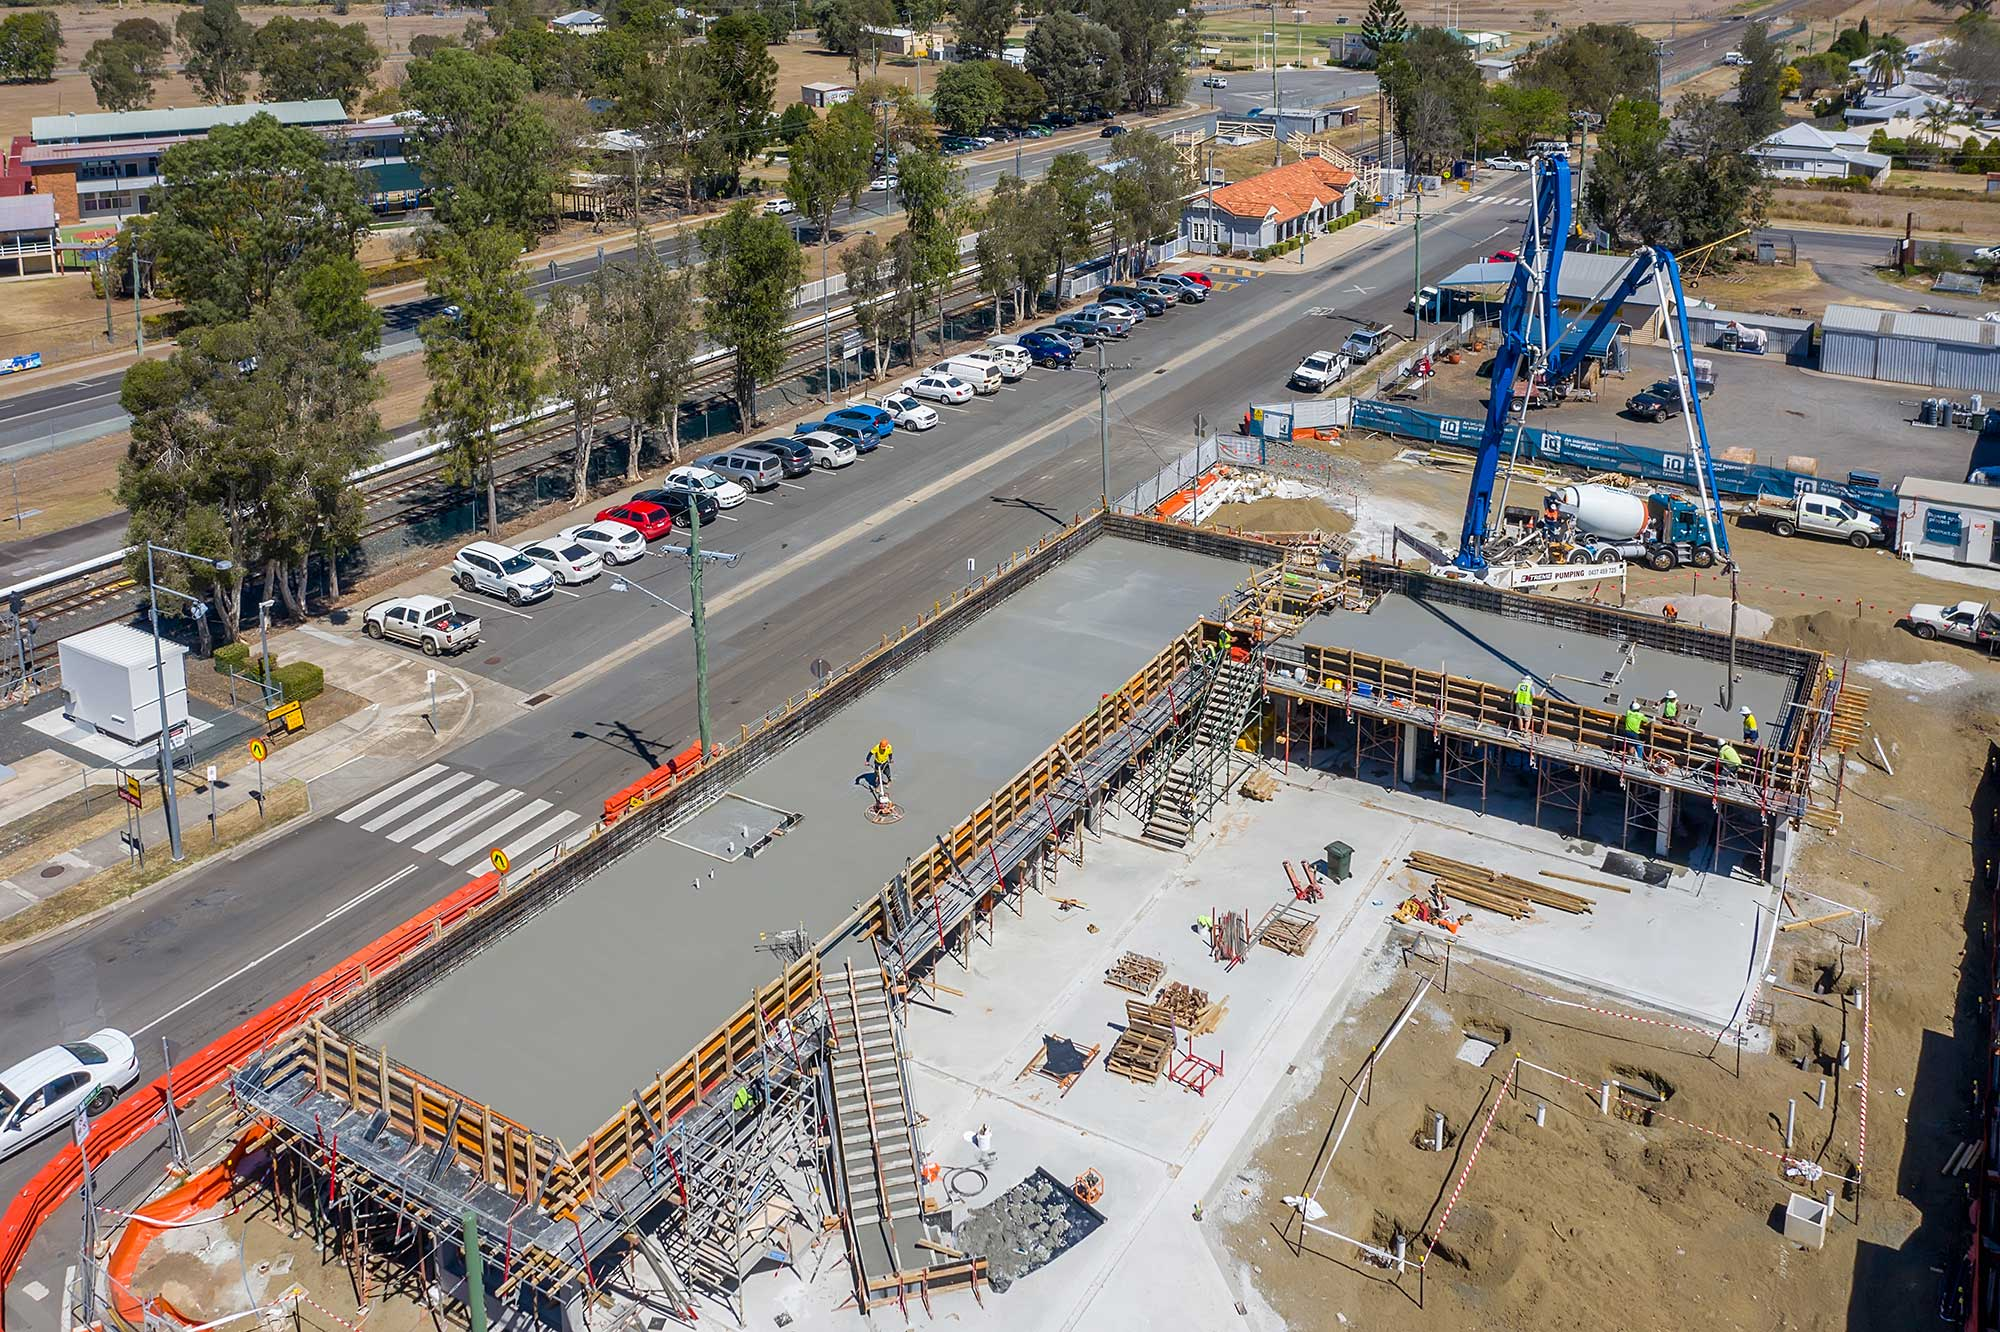 Drone photography update at Rosewood library construction project